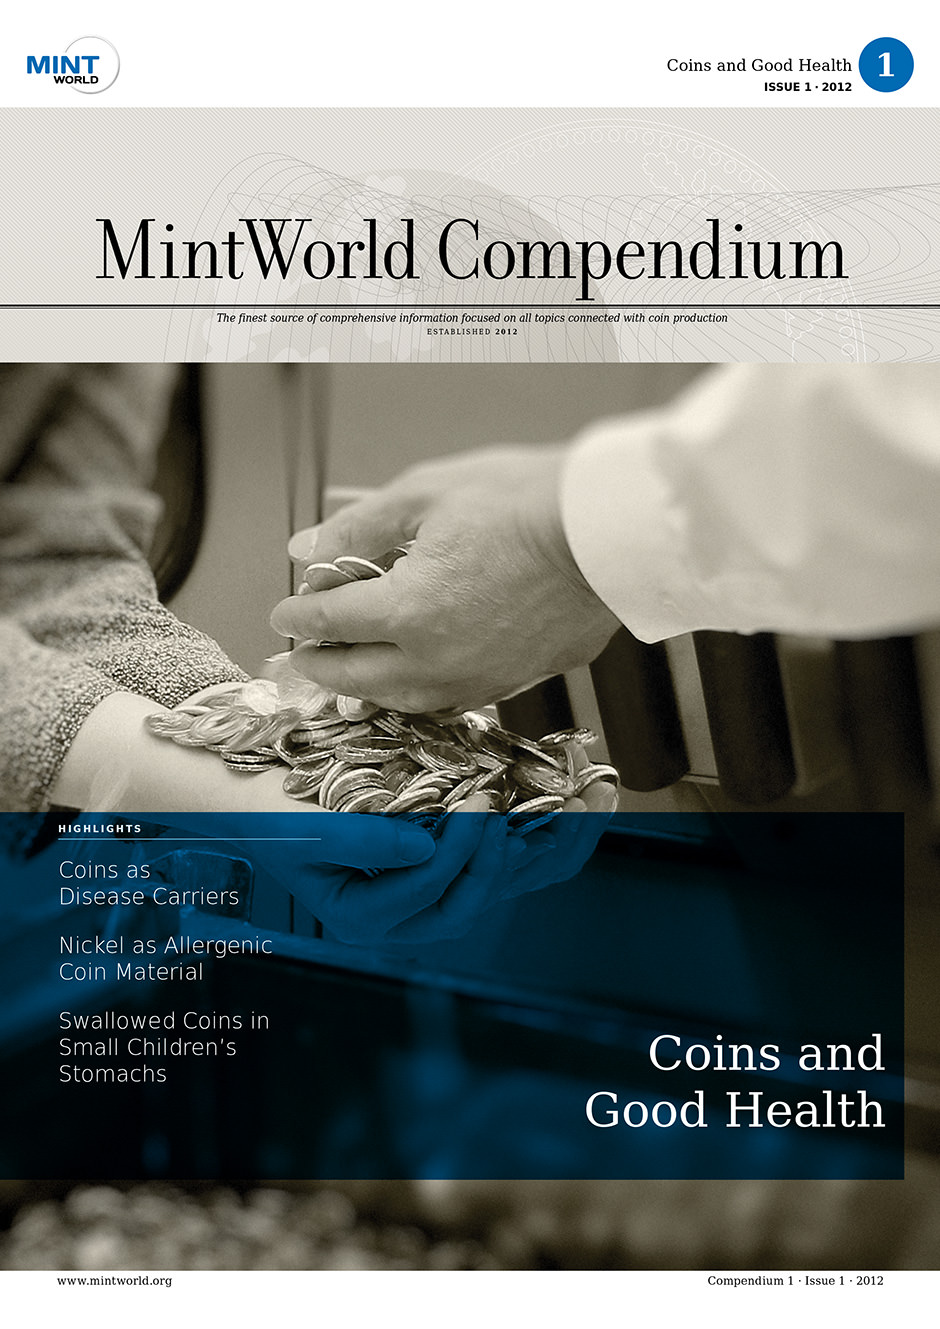 MintWorld Compendium, Compendium 1 · Issue 1 · 2012, Coins and Good Health, This issue is about health aspects in the coin industry.